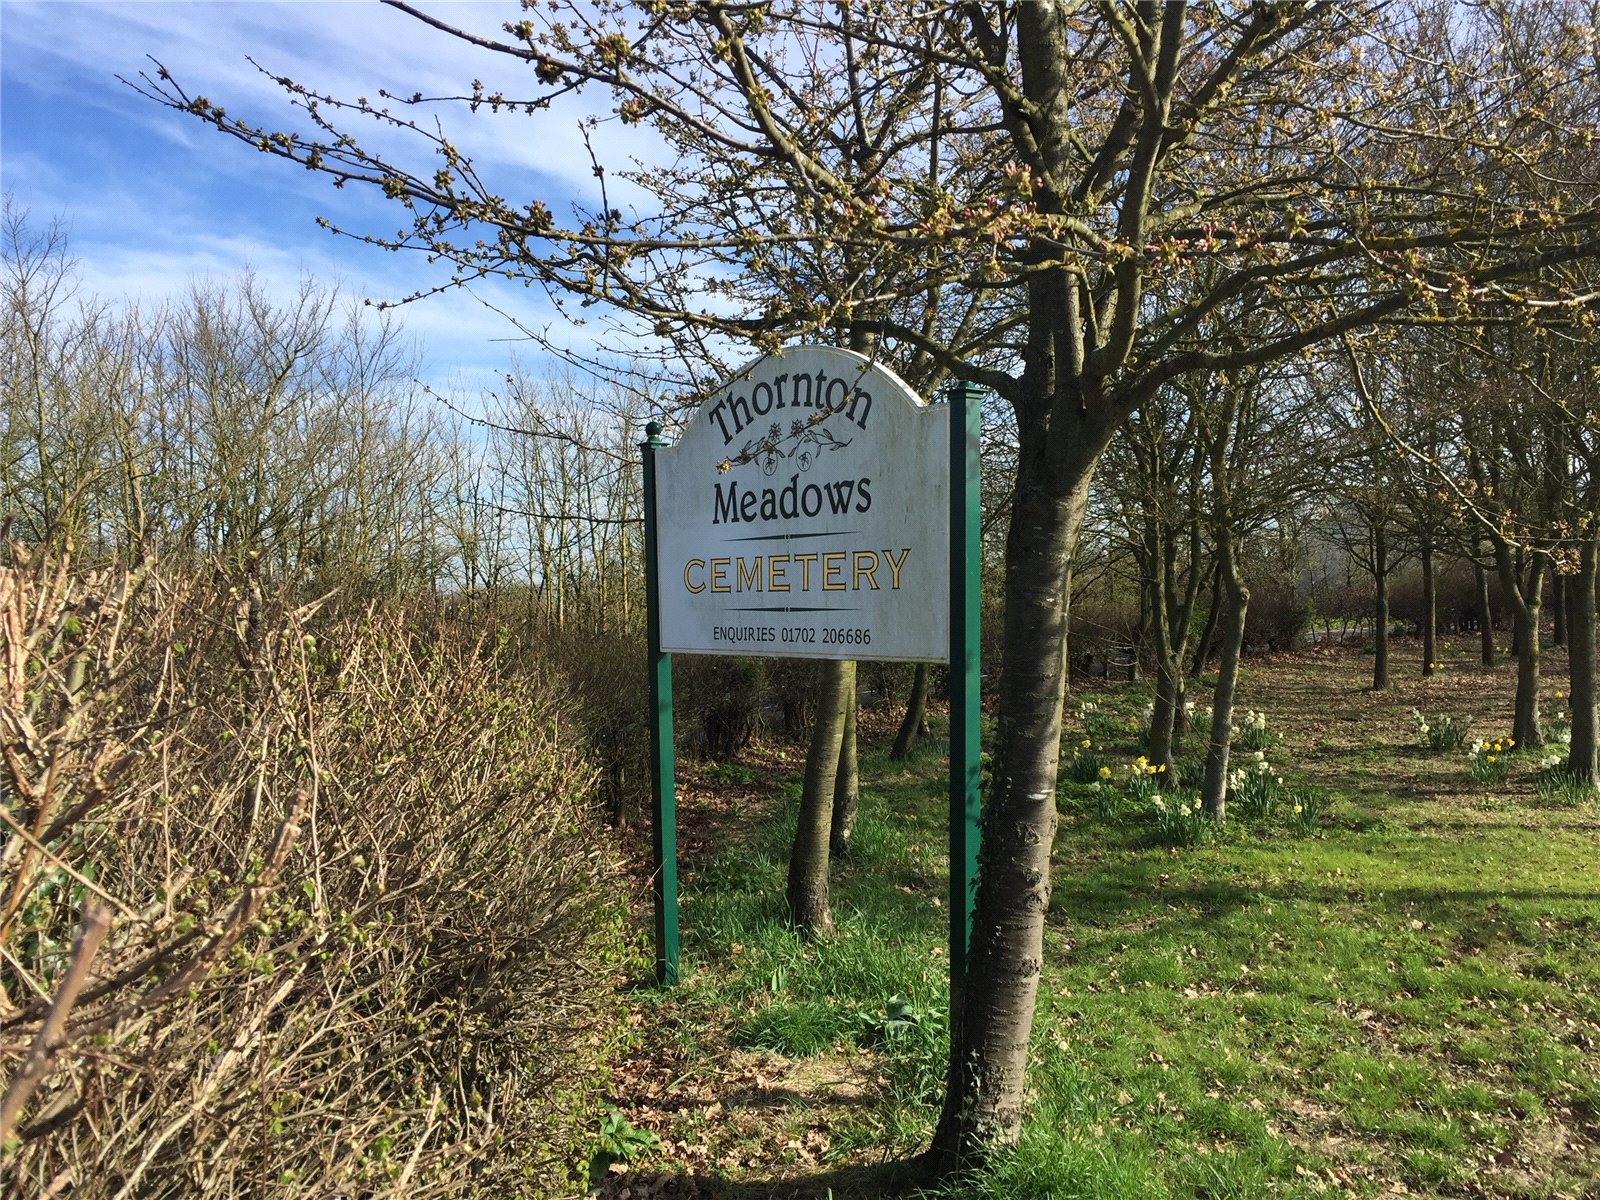 Wild Flower Cemetery sold in Essex